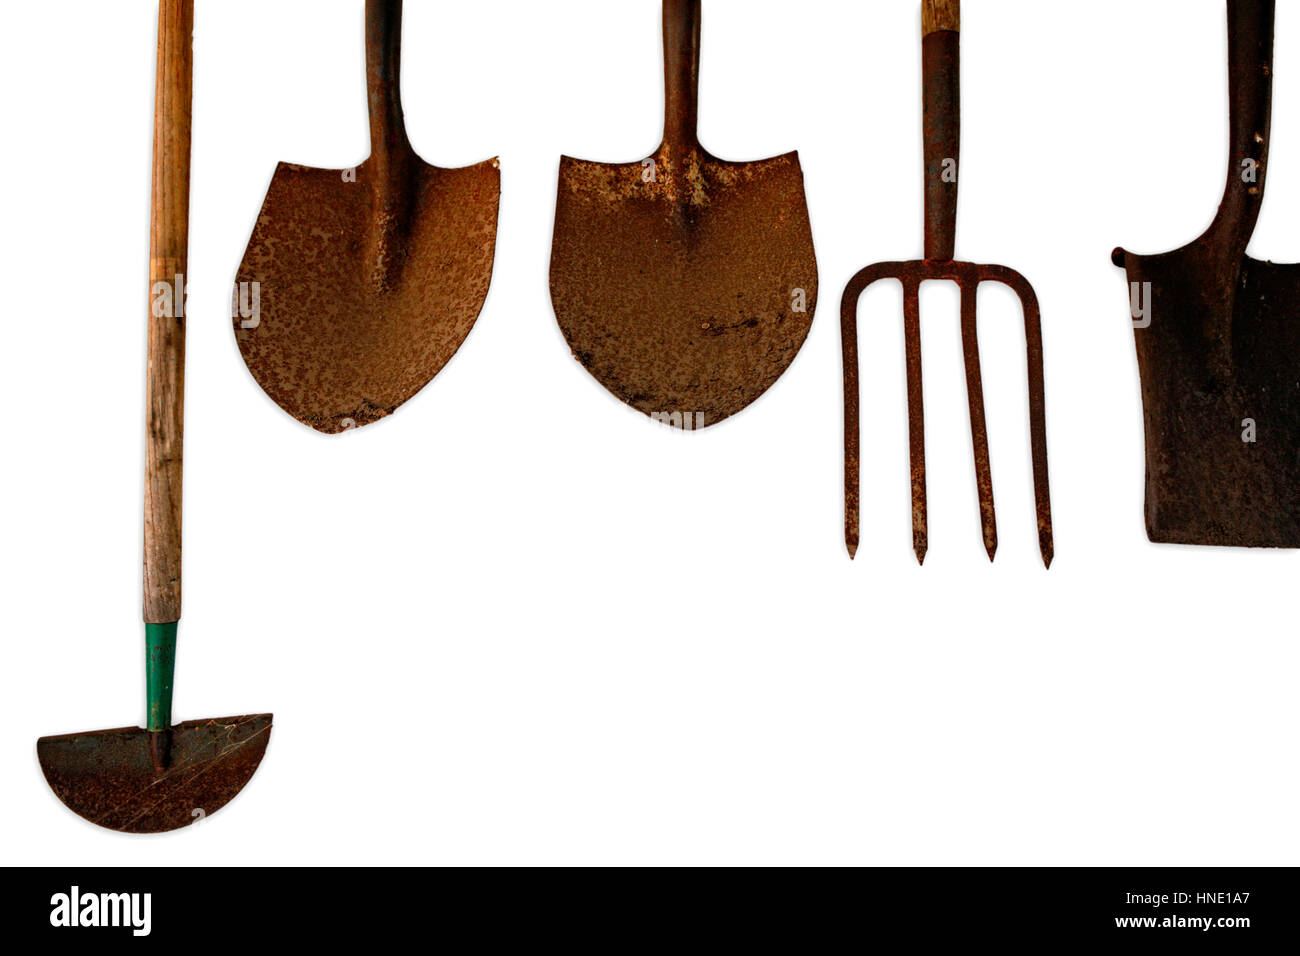 alamy shed garden hanging photo tools of tool rows up stock hanger inside